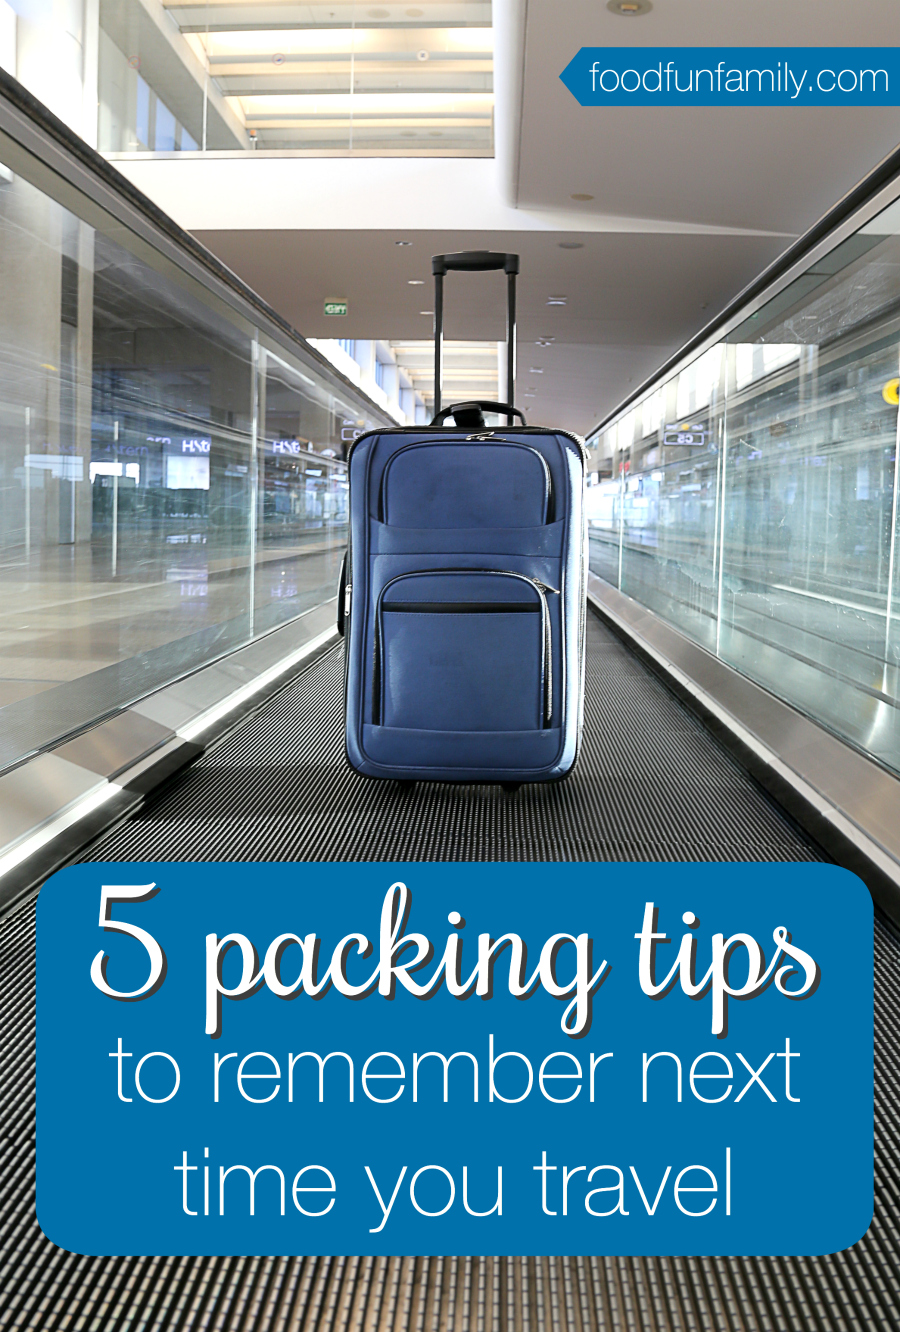 Love to travel and explore? Check out these 5 packing tips to remember next time you travel - how and what to pack!